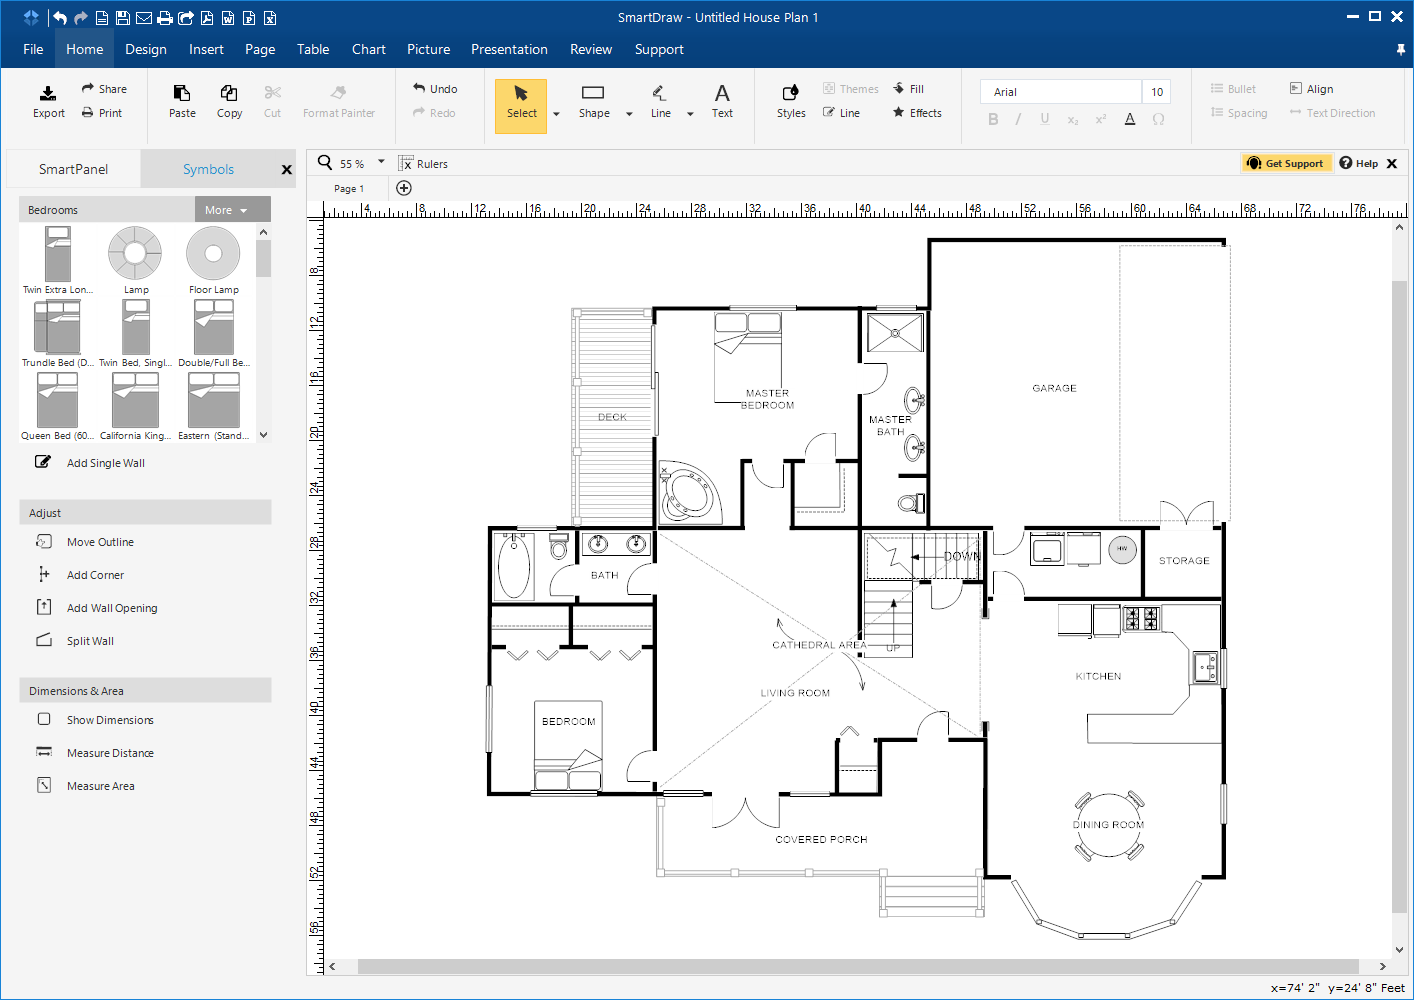 floor plans - Smartdraw Support